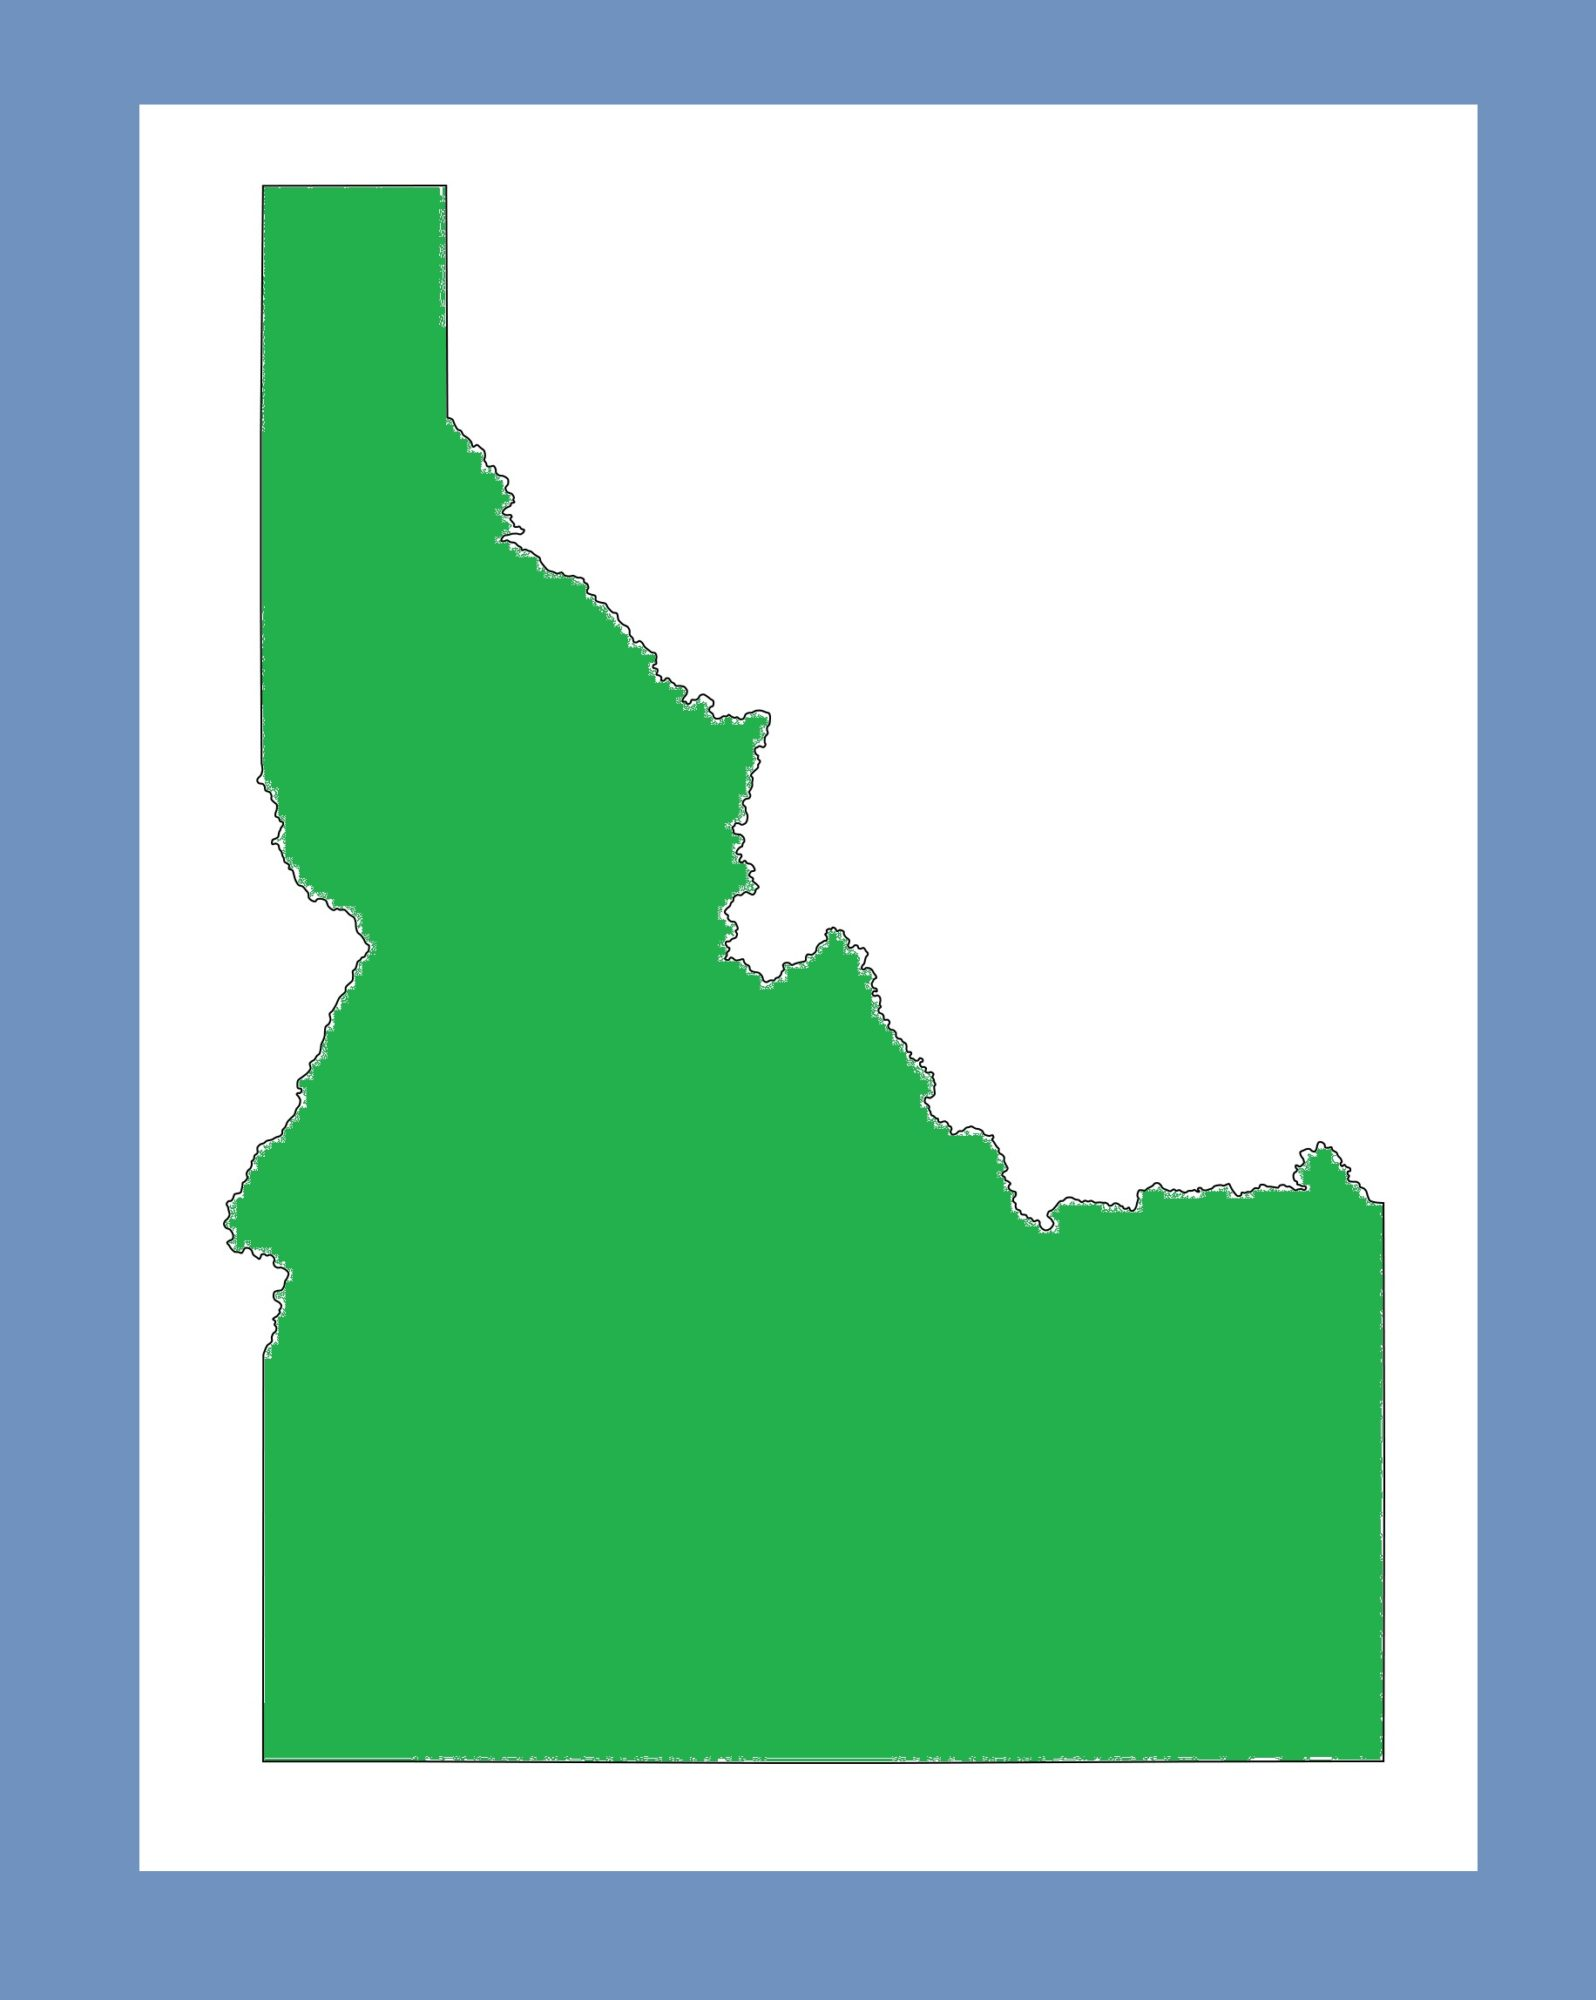 Idaho Blank Outline Map   Large Printable and Standard Map 9